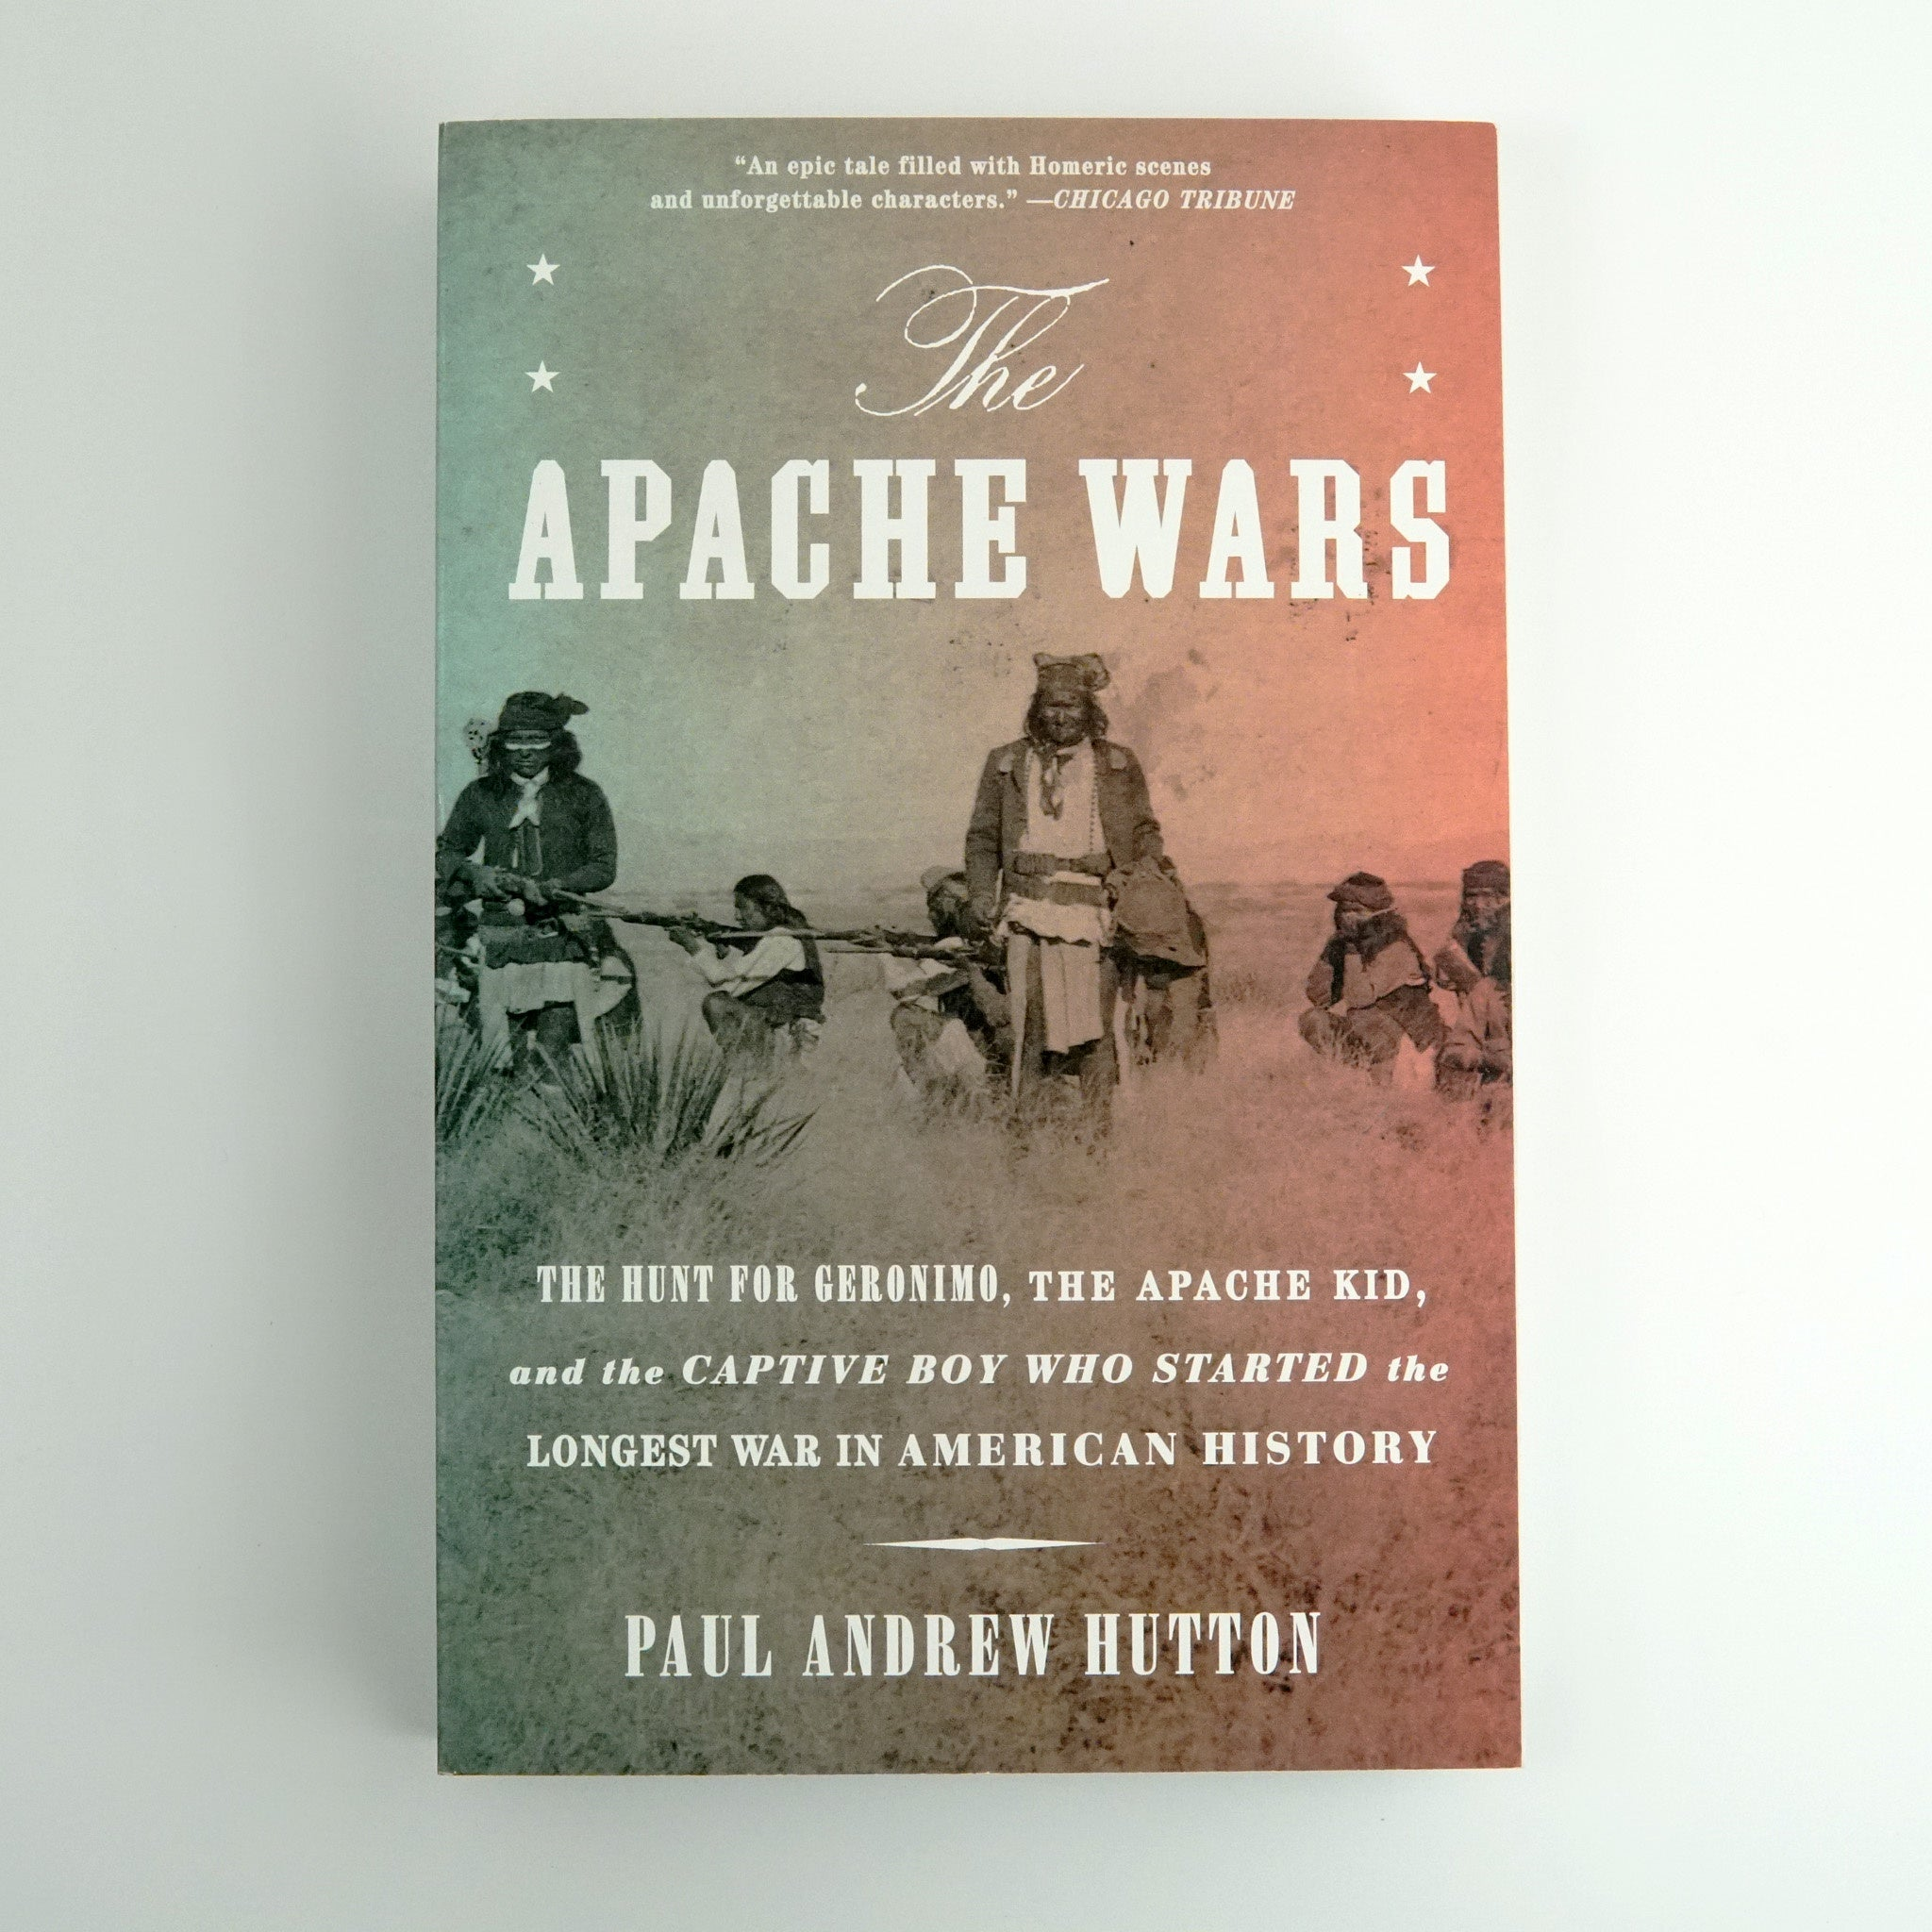 BK 12 THE APACHE WARS BY  PAUL ANDREW HUTTON